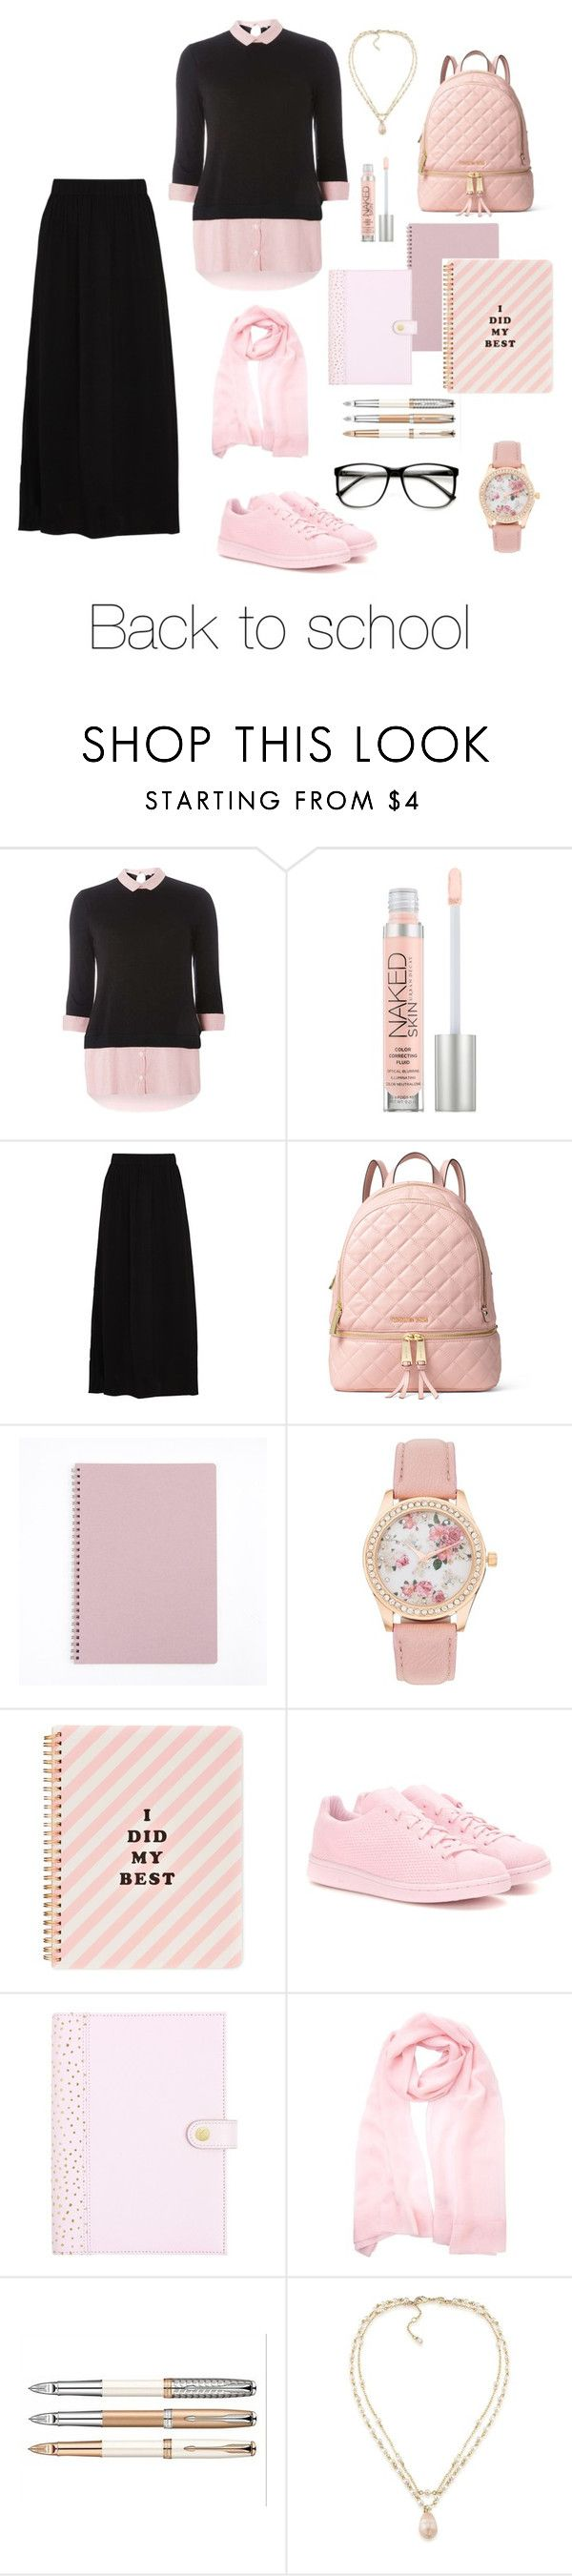 """Back to #School"" by modestandelegant ❤ liked on Polyvore featuring Dorothy Perkins, Urban Decay, American Vintage, MICHAEL Michael Kors, ban.do, adidas Originals, Carolee, ZeroUV, BackToSchool and school"